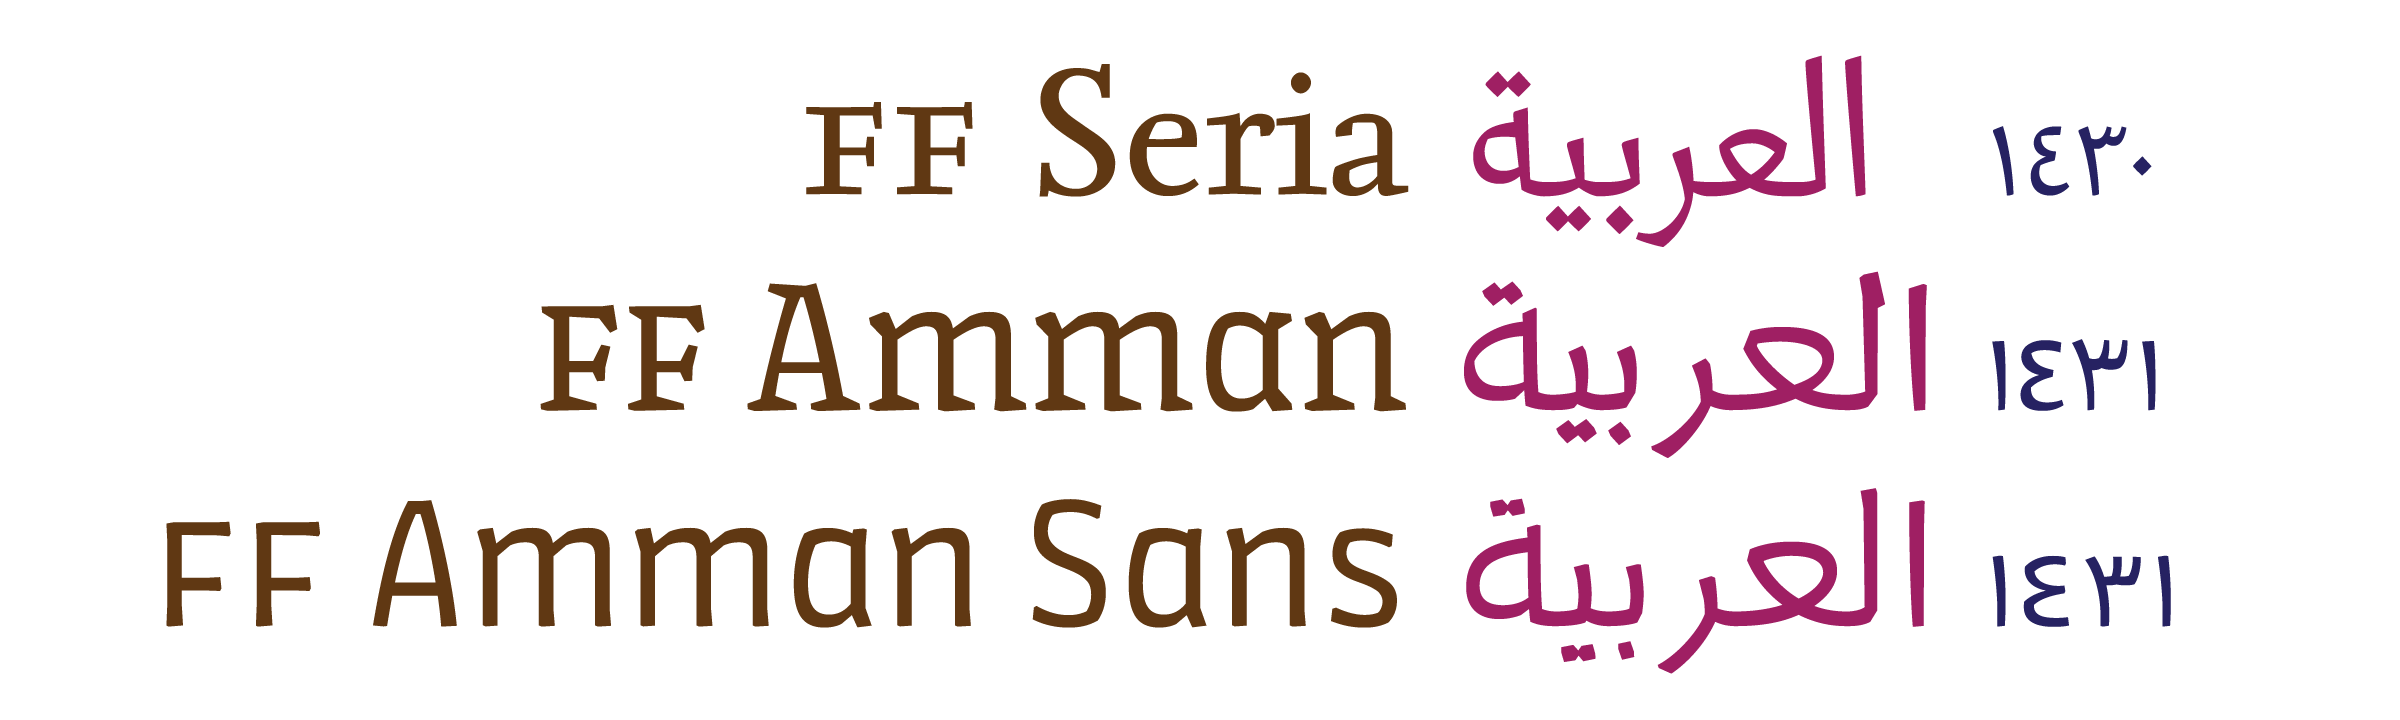 The first three FontFont families available in both Latin and Arabic – FF Seria, FF Amman and FF Amman Sans.